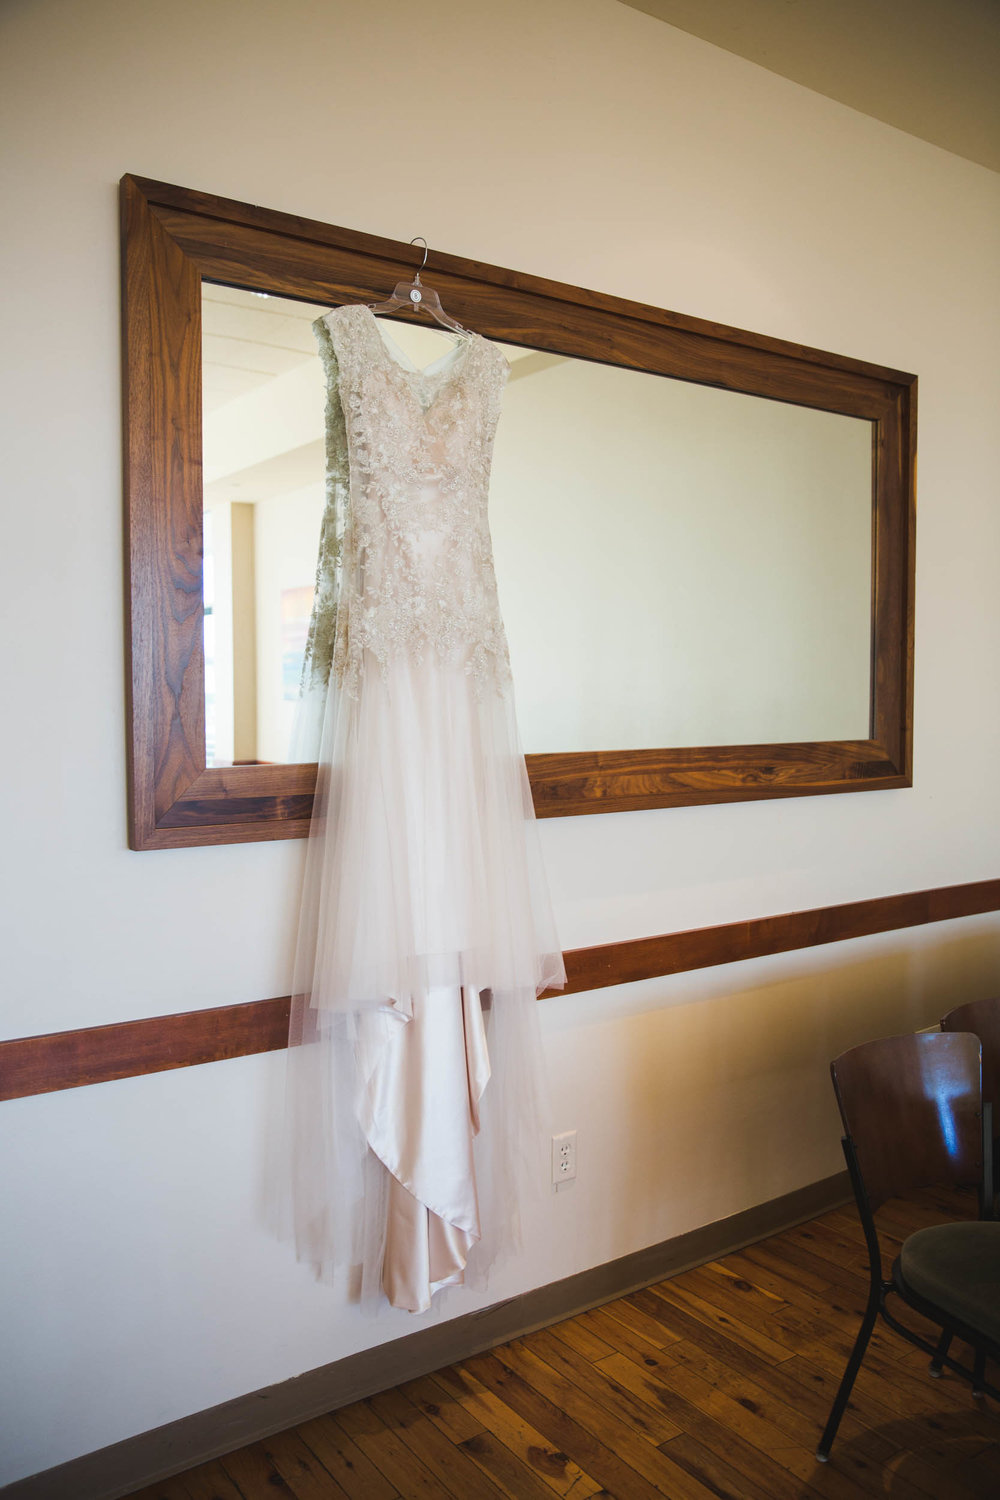 courtney and tom's wedding at pinstripes by anna schultz photography.jpg